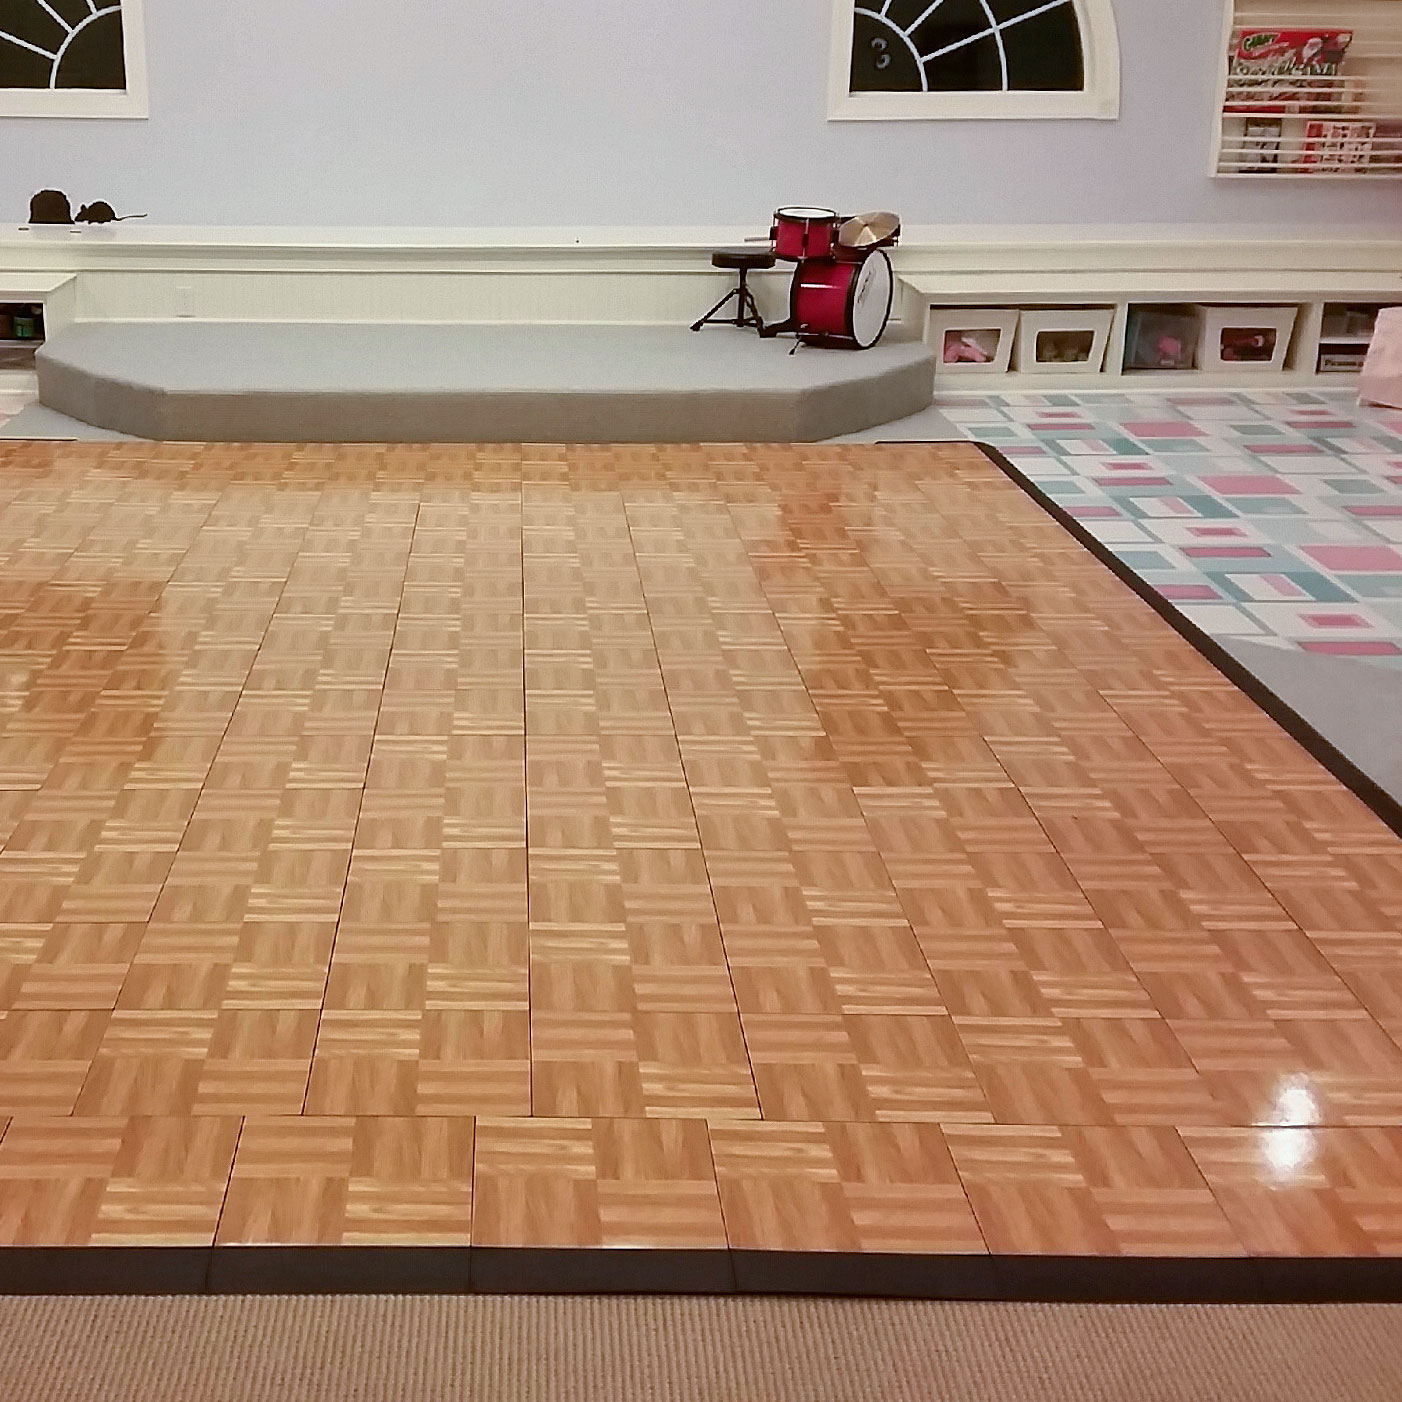 Playroom with Oak dance floor and edging